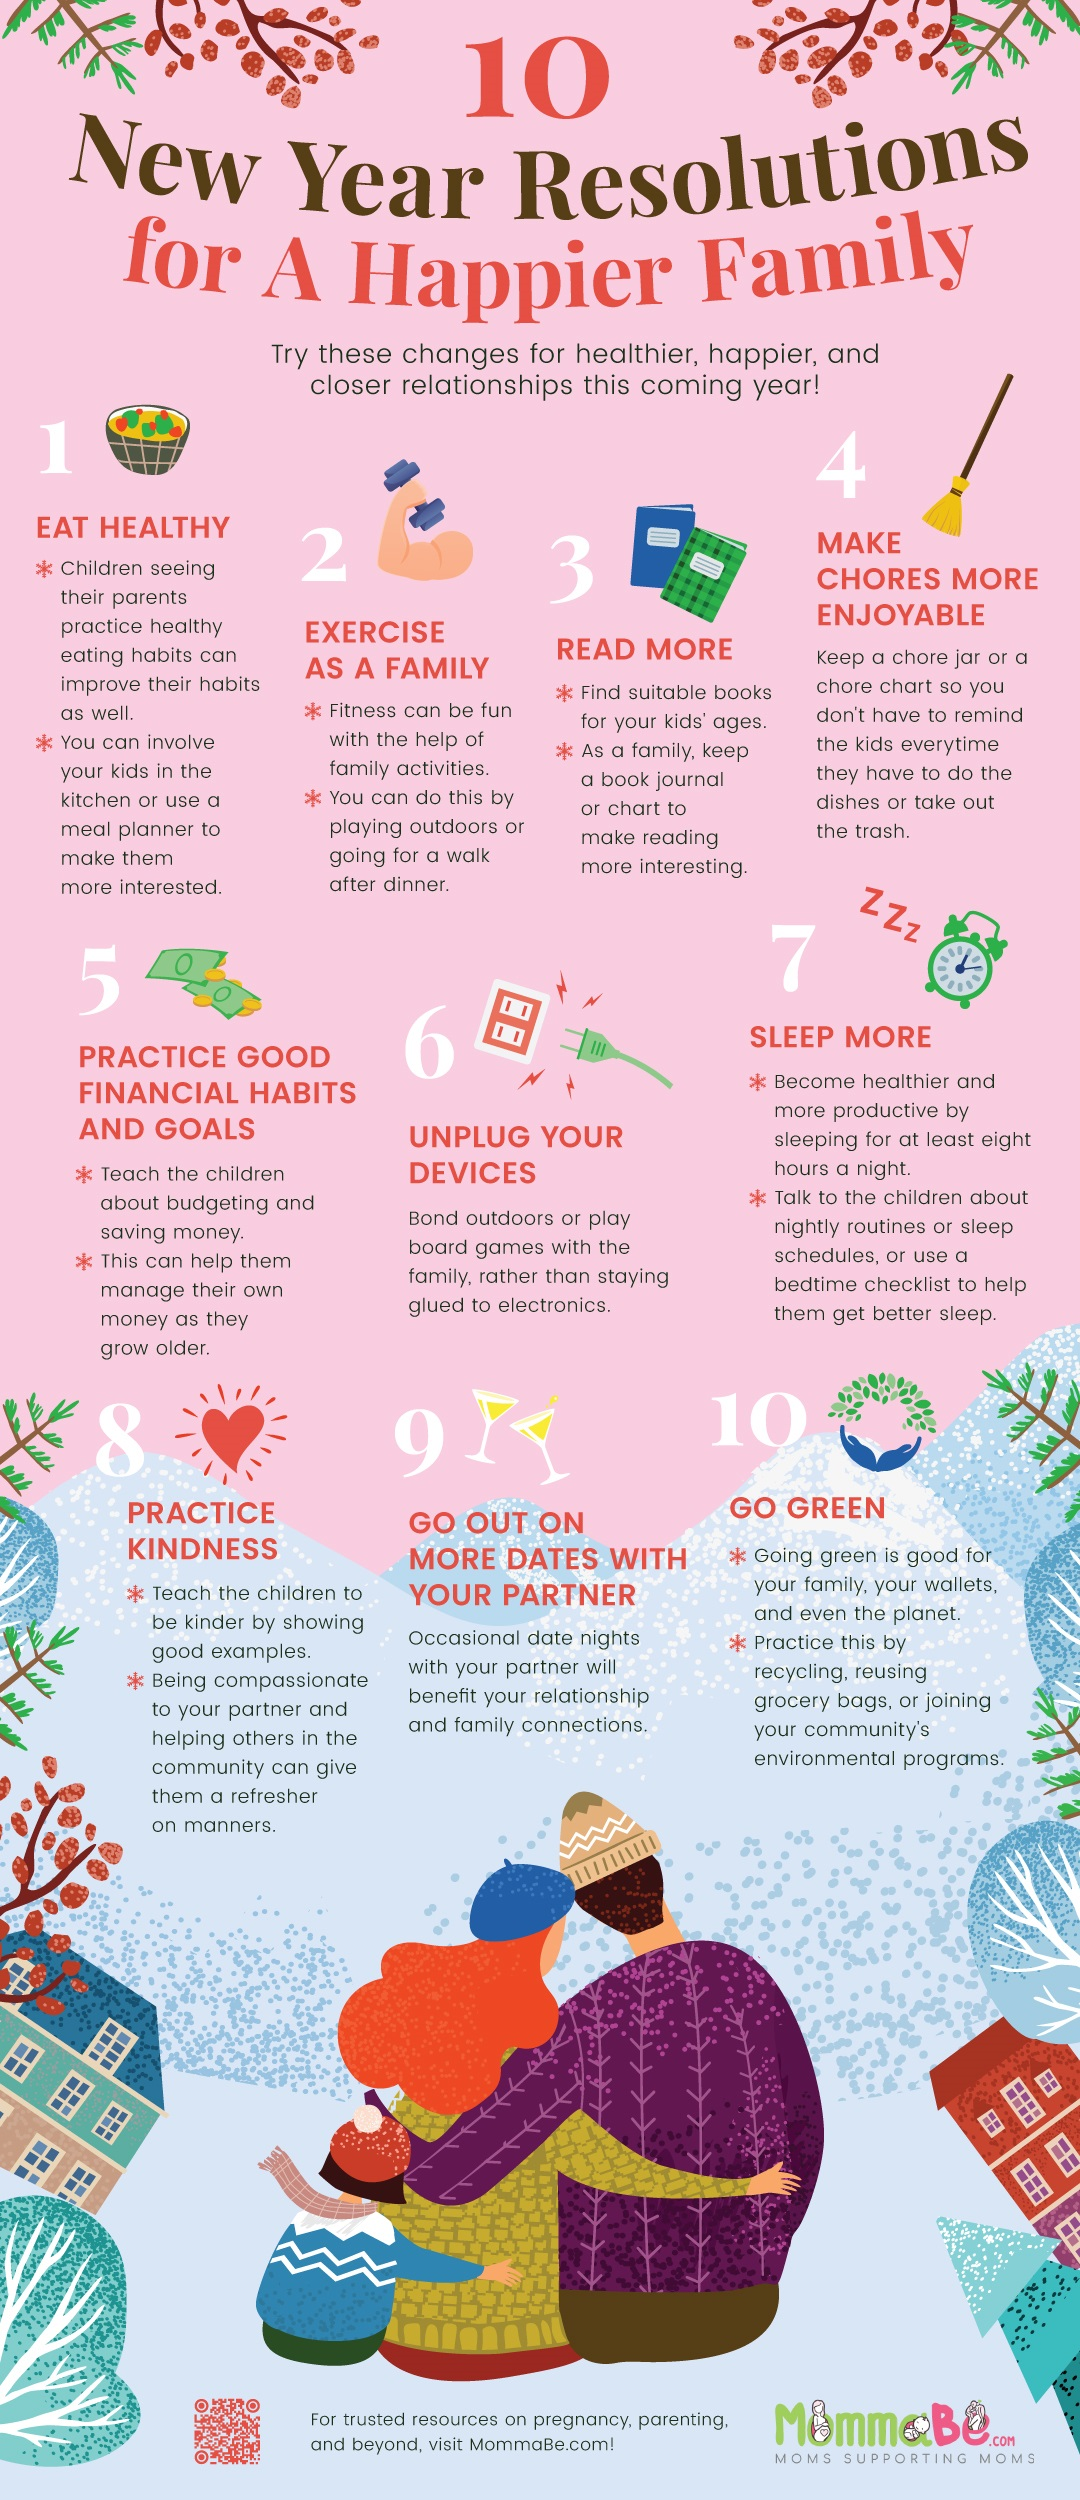 10 New Year Resolutions For A Happier Family #infographic #Family #New Year Resolutions #New Year #infographics #Happier Family